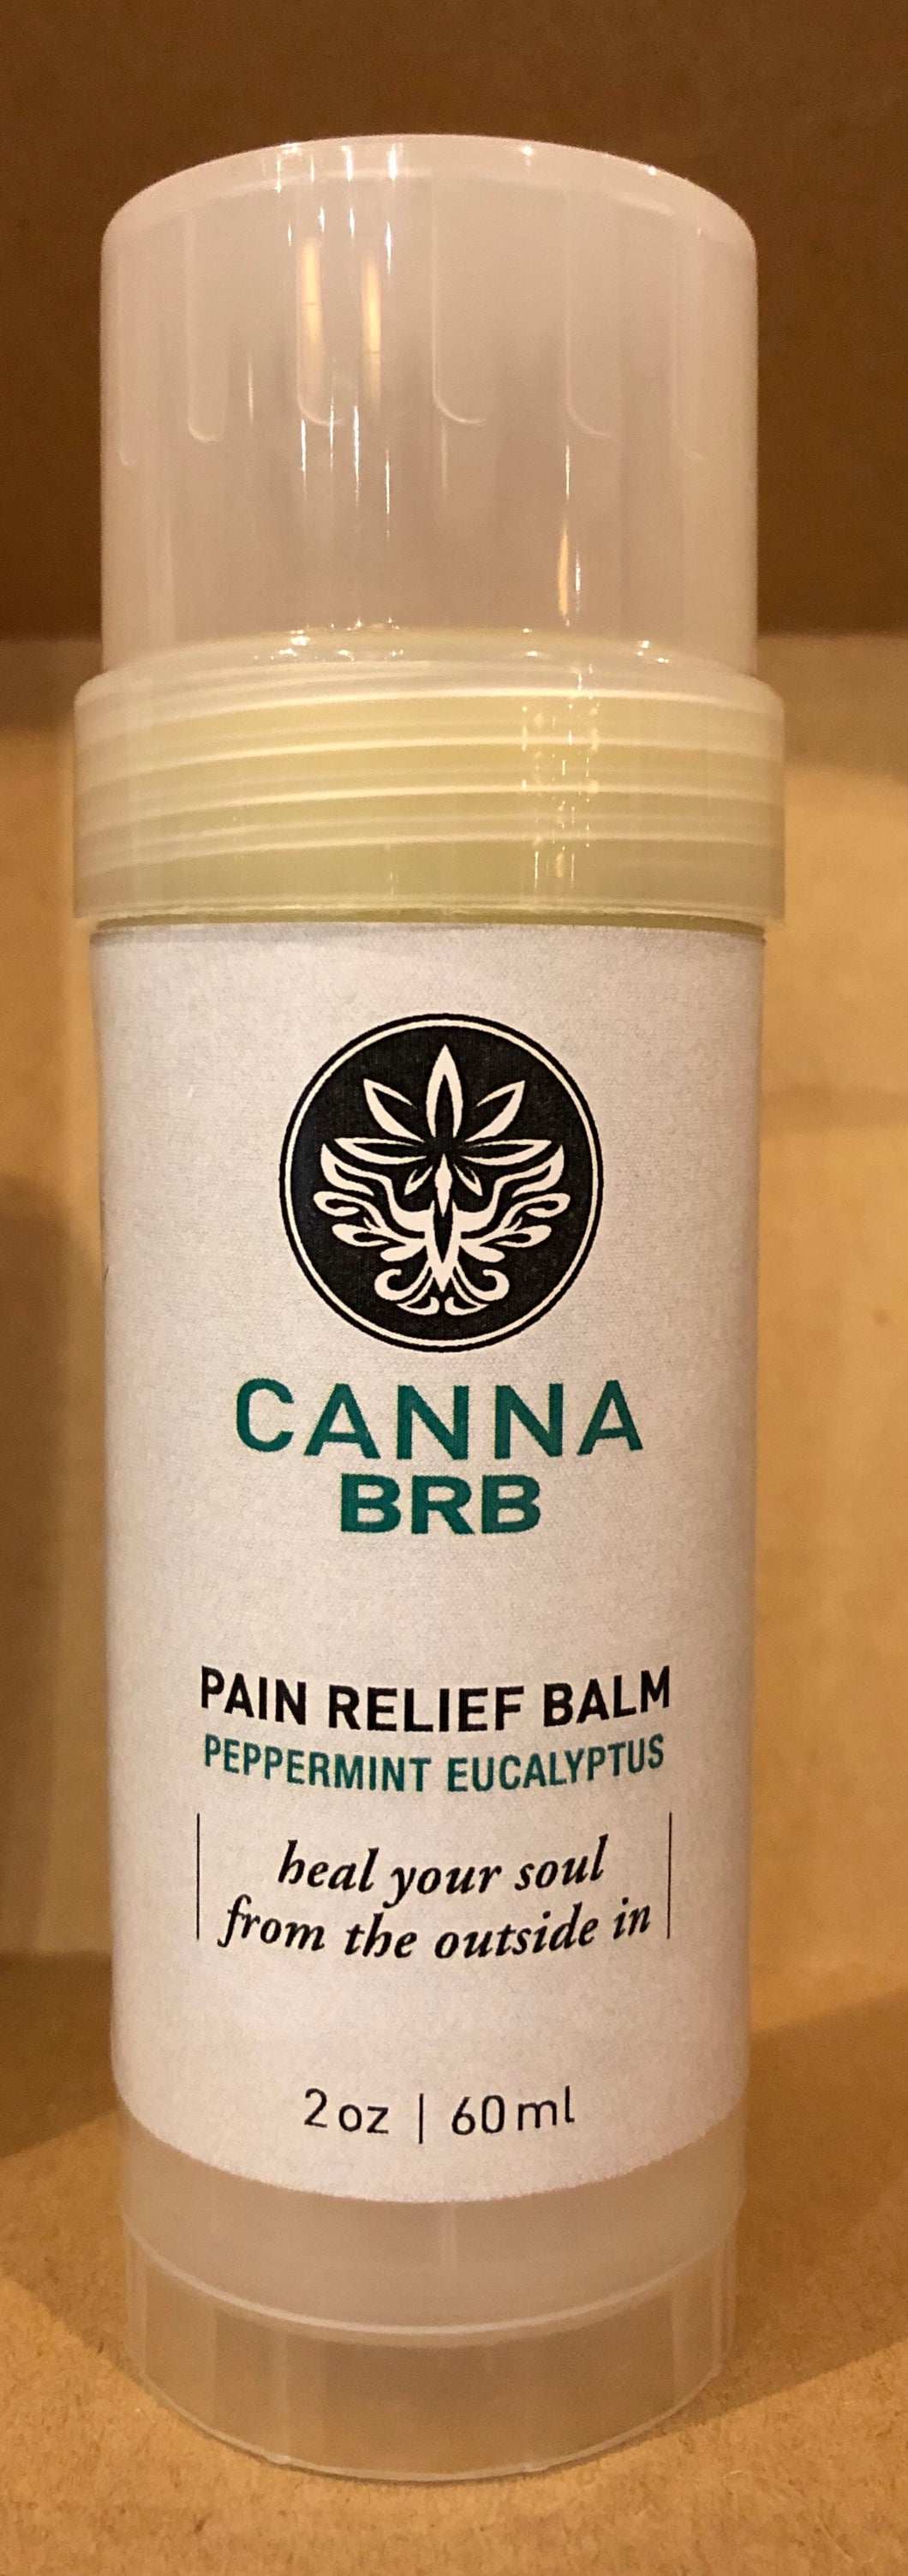 Pain Relief Body Relaxation Balm Twist Stick- Peppermint Eucalyptus 2oz